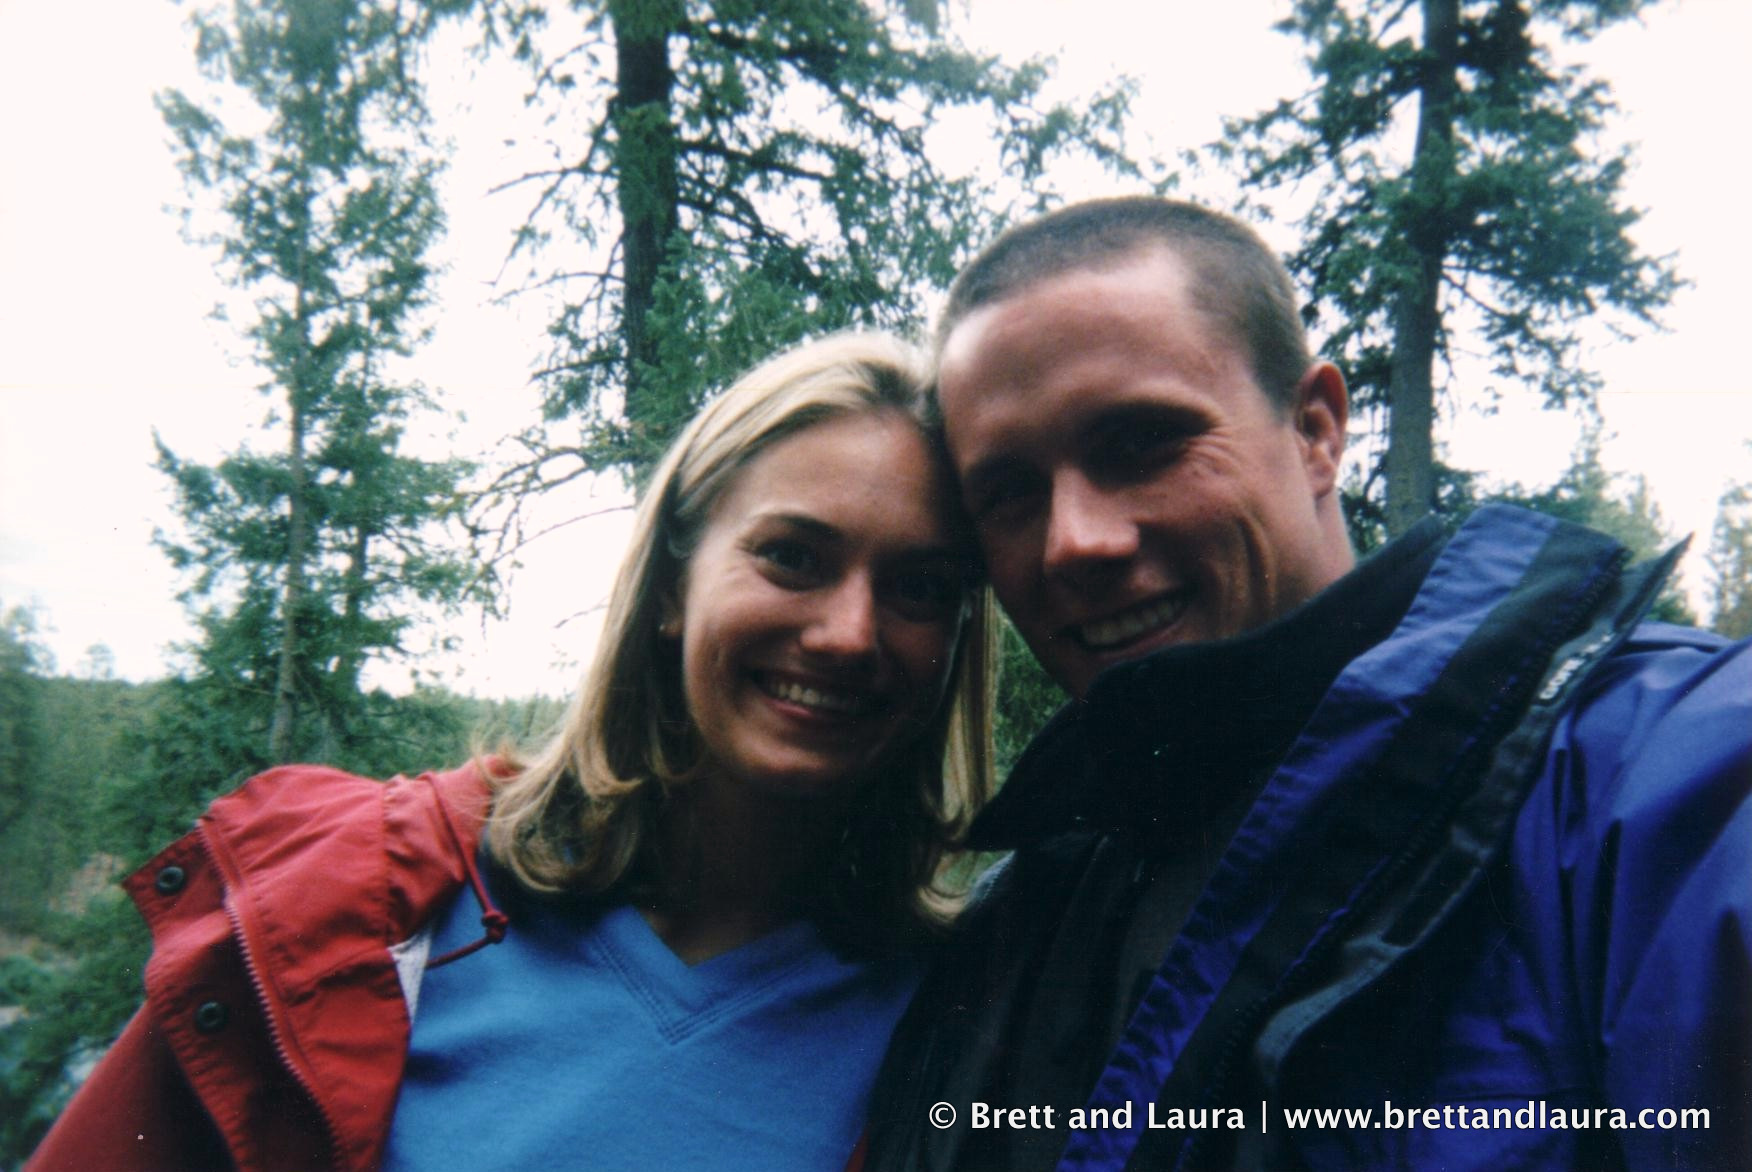 Brett and Laura Holt in Spokane